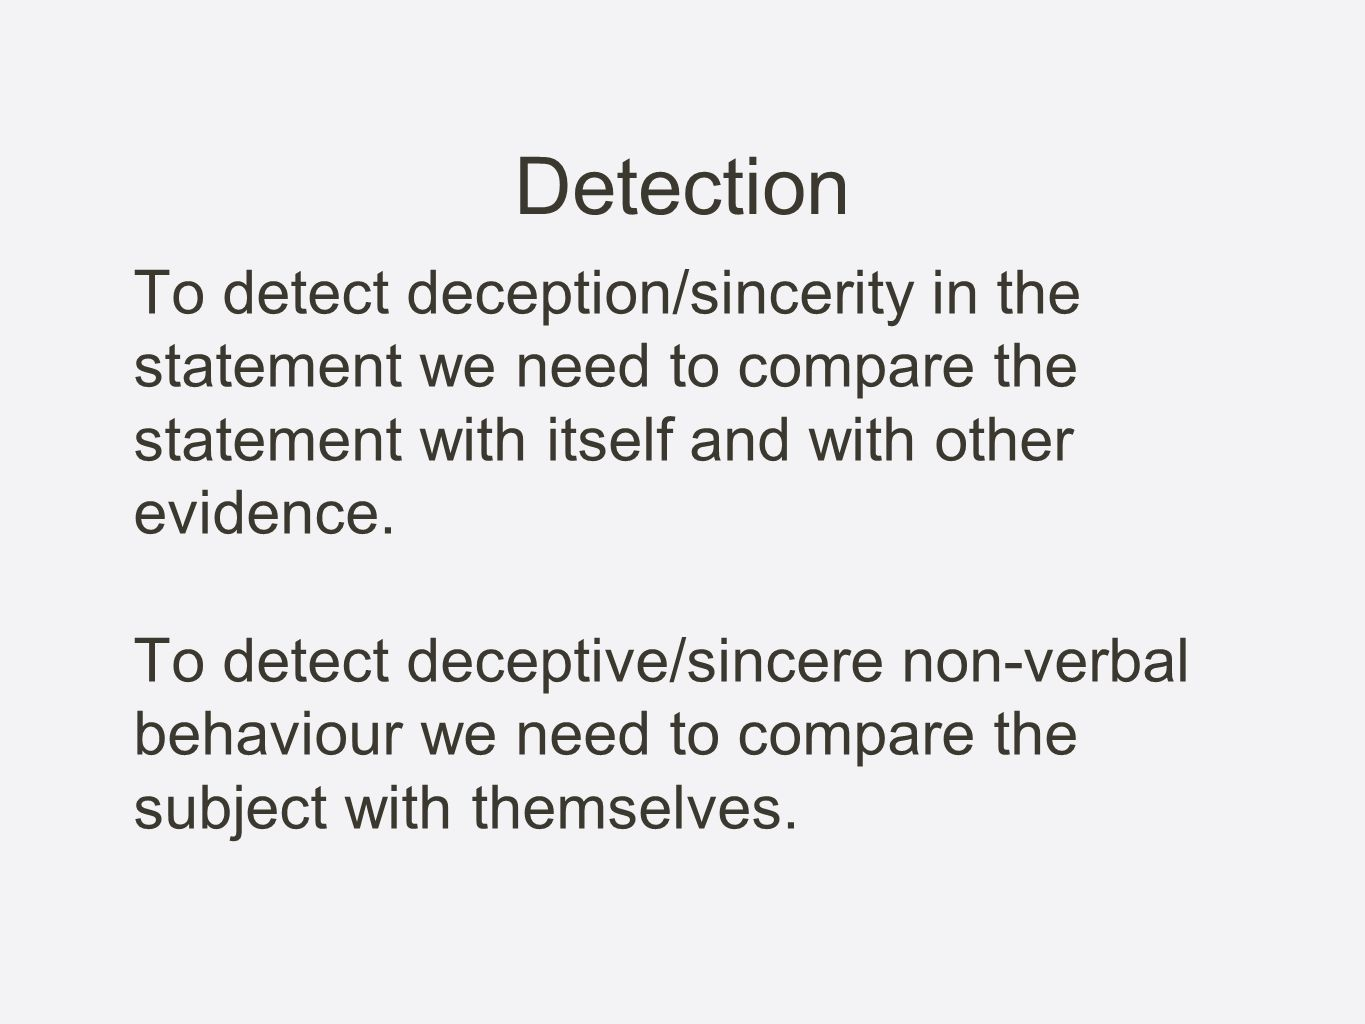 DetectionTo detect deception/sincerity in the statement we need to compare the statement with itself and with other evidence.